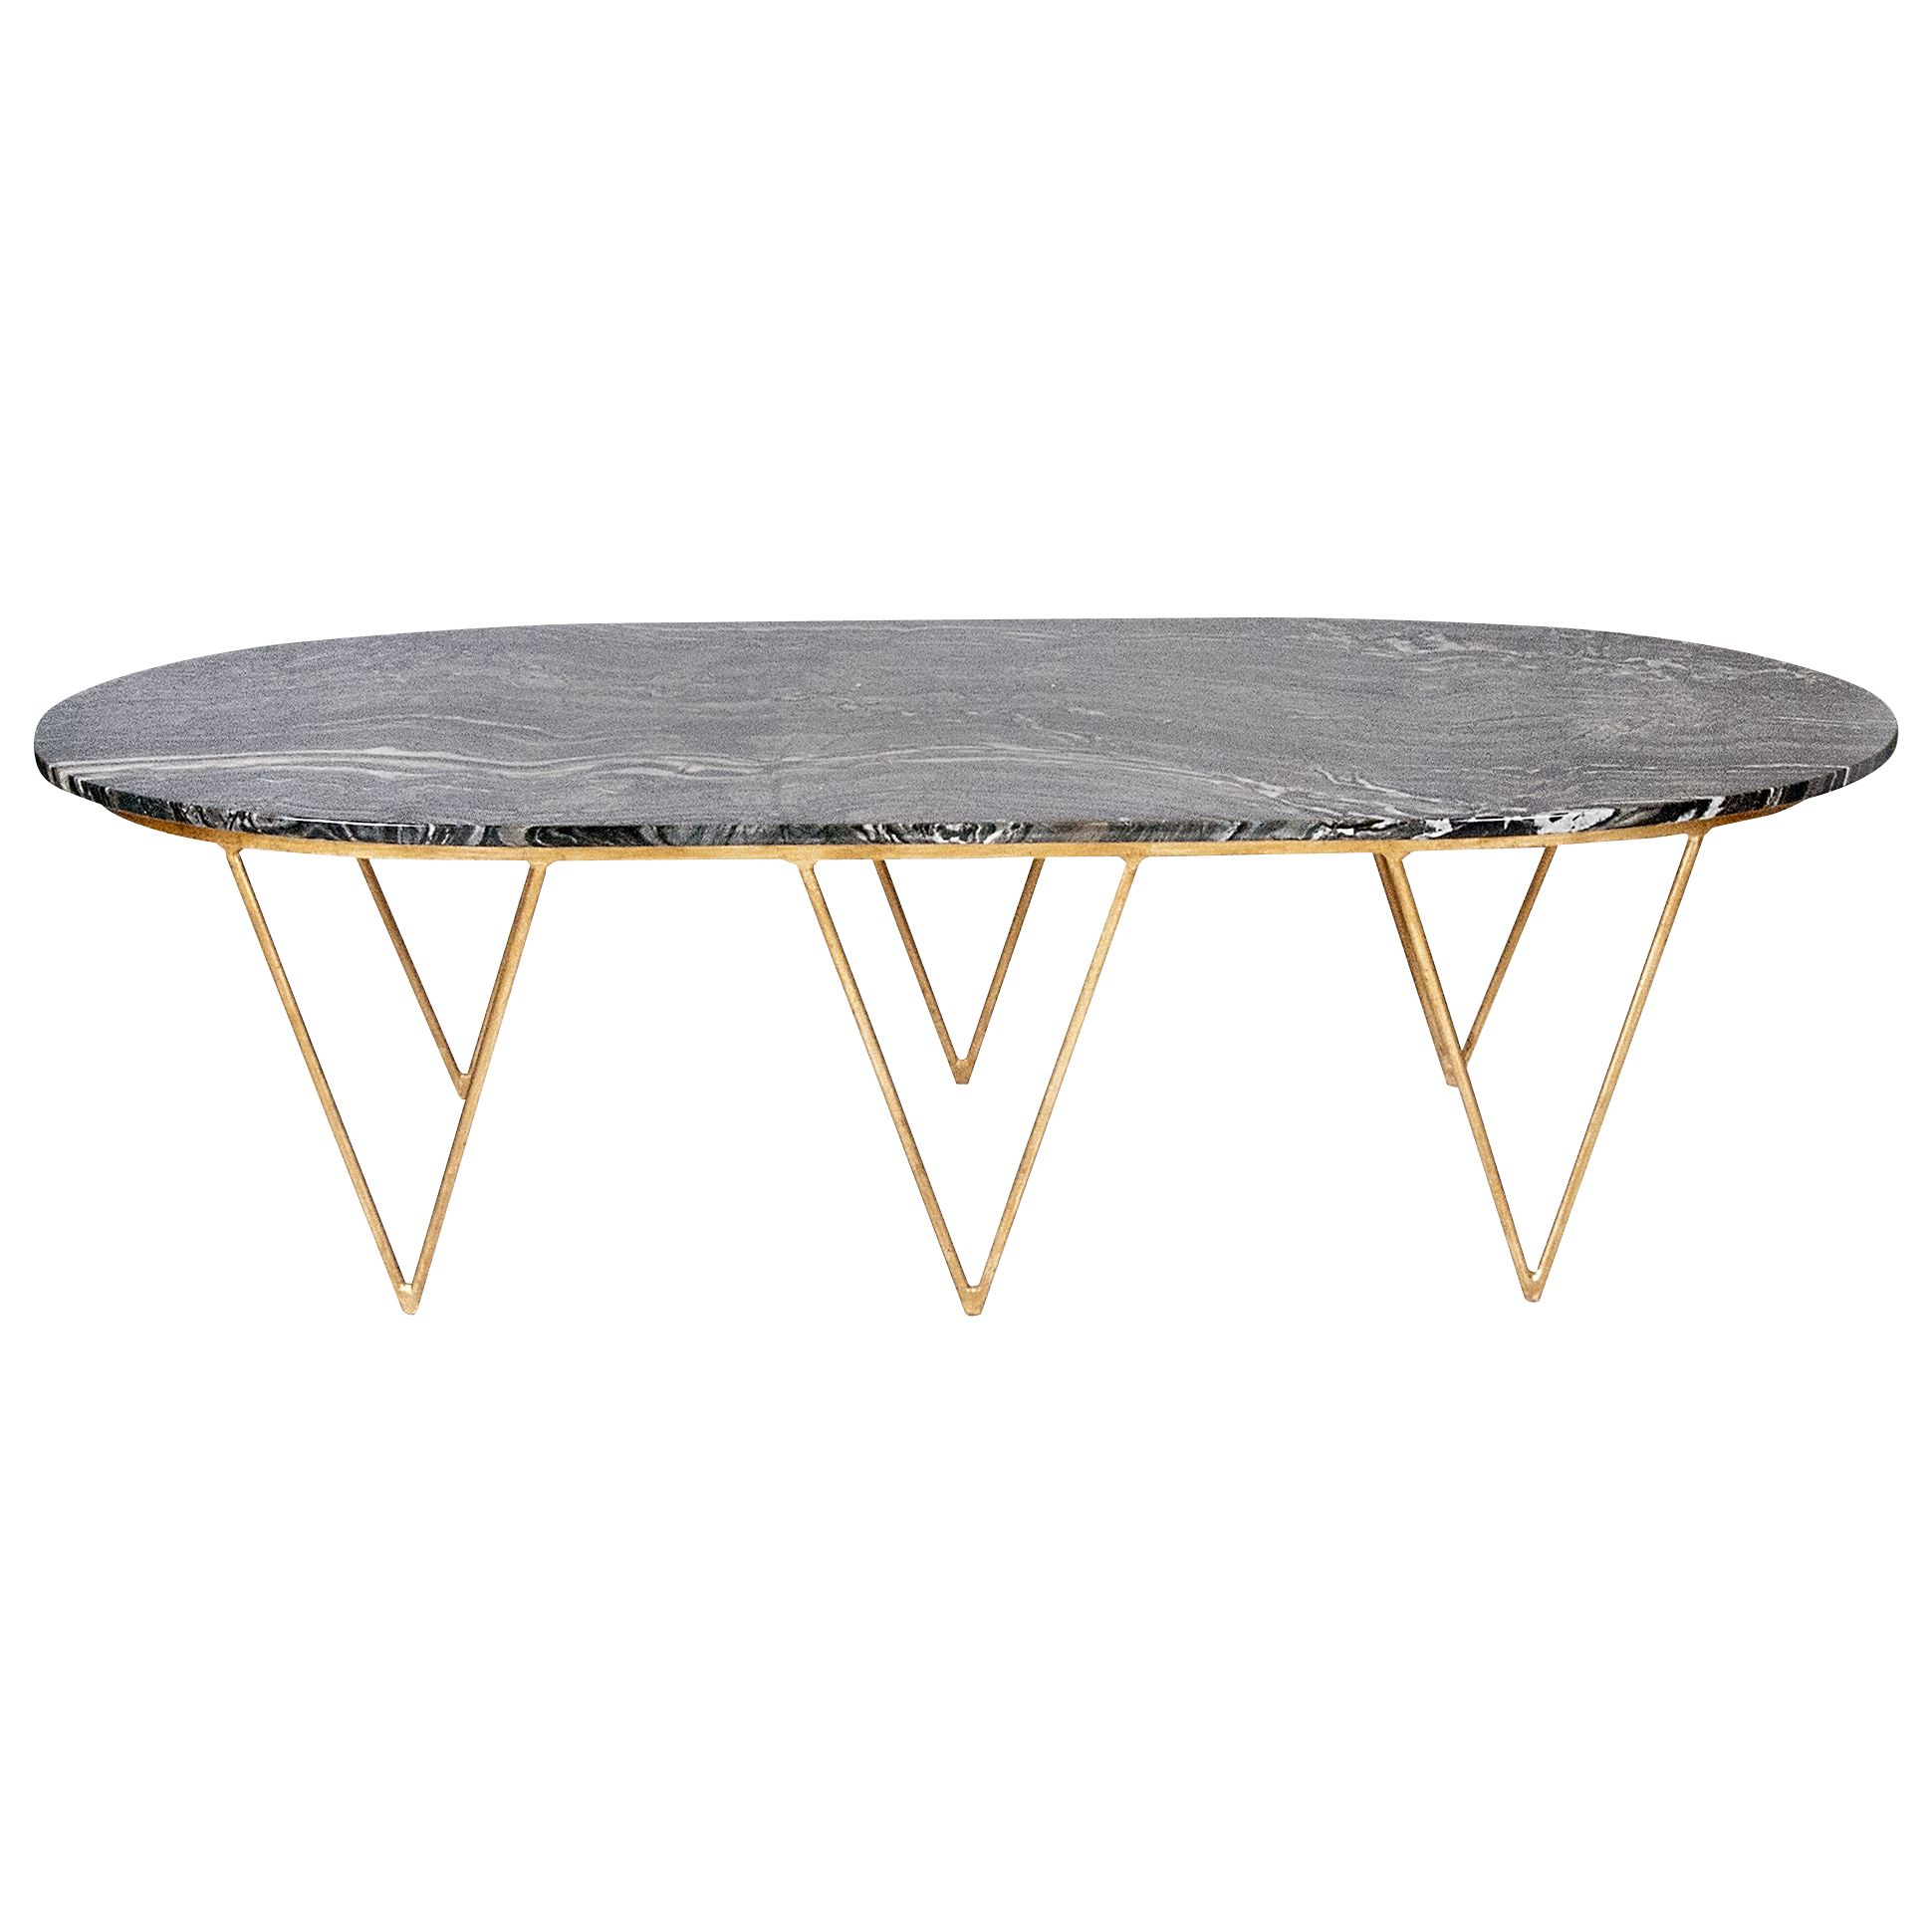 Oval Hairpin Coffee Table with Black Marble Top Available in gold